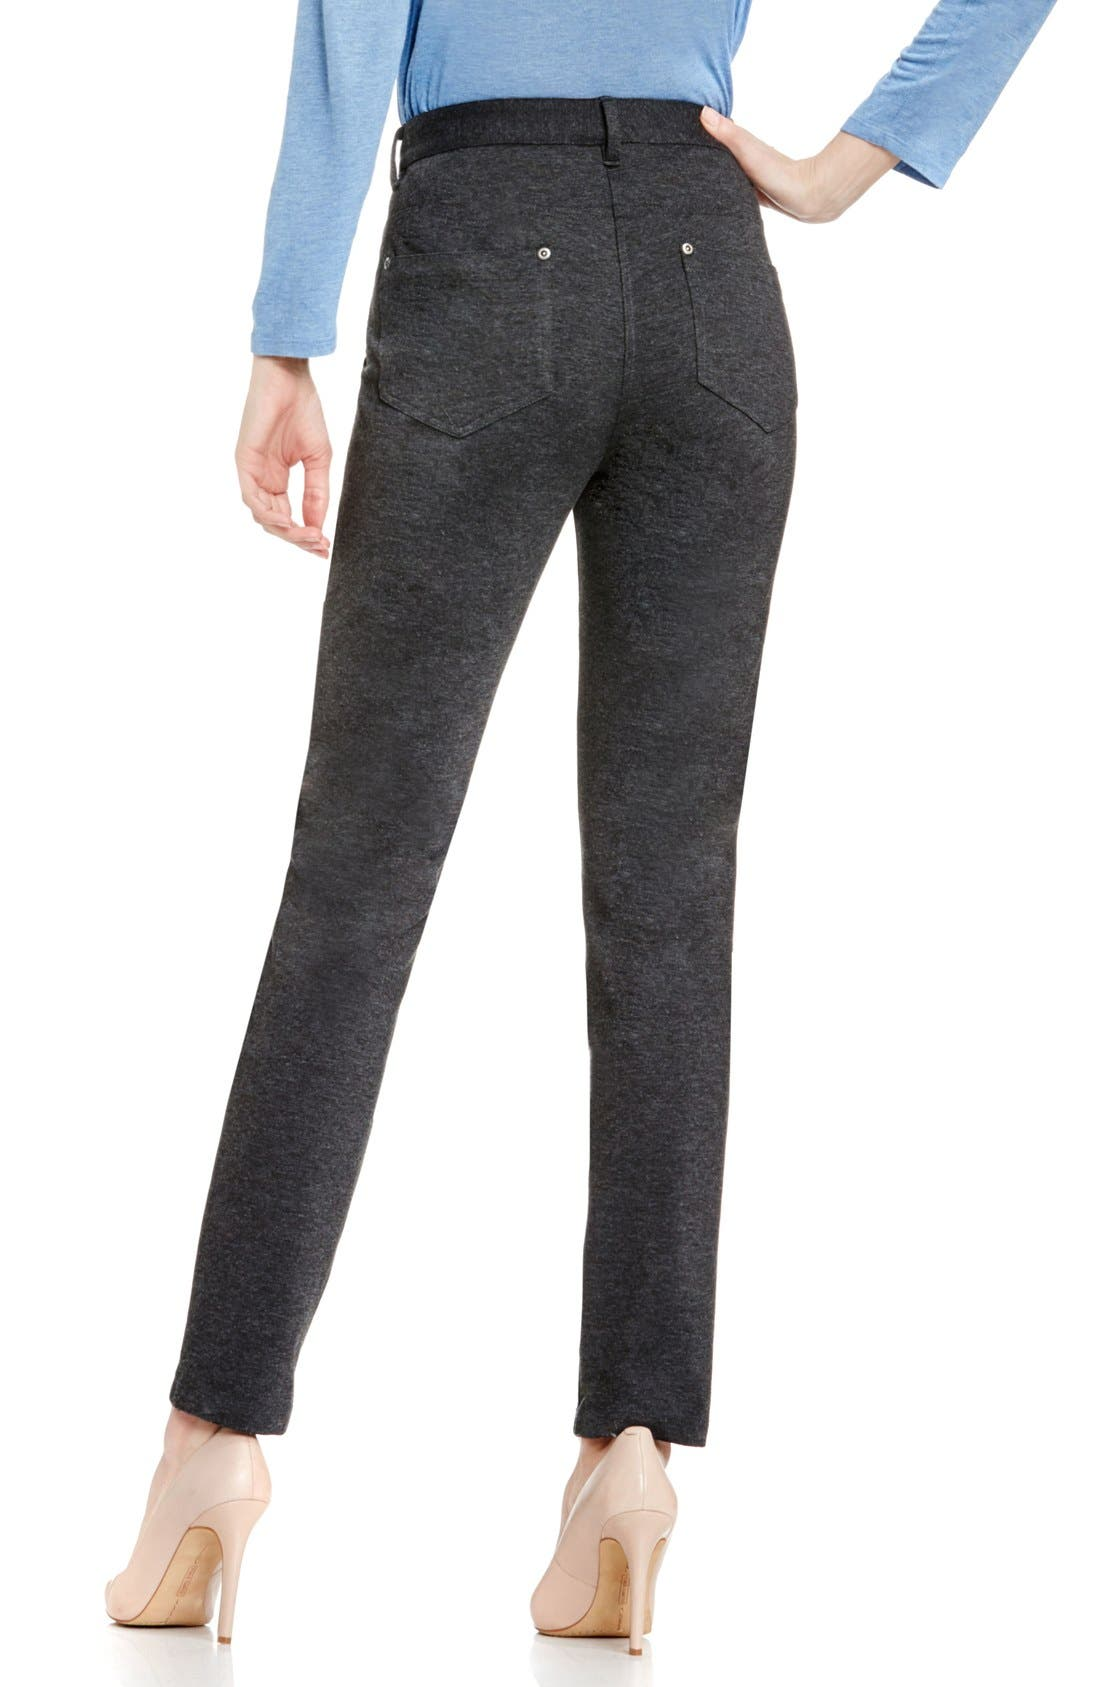 Alternate Image 3  - Two by Vince Camuto Skinny Ponte Pants (Petite)